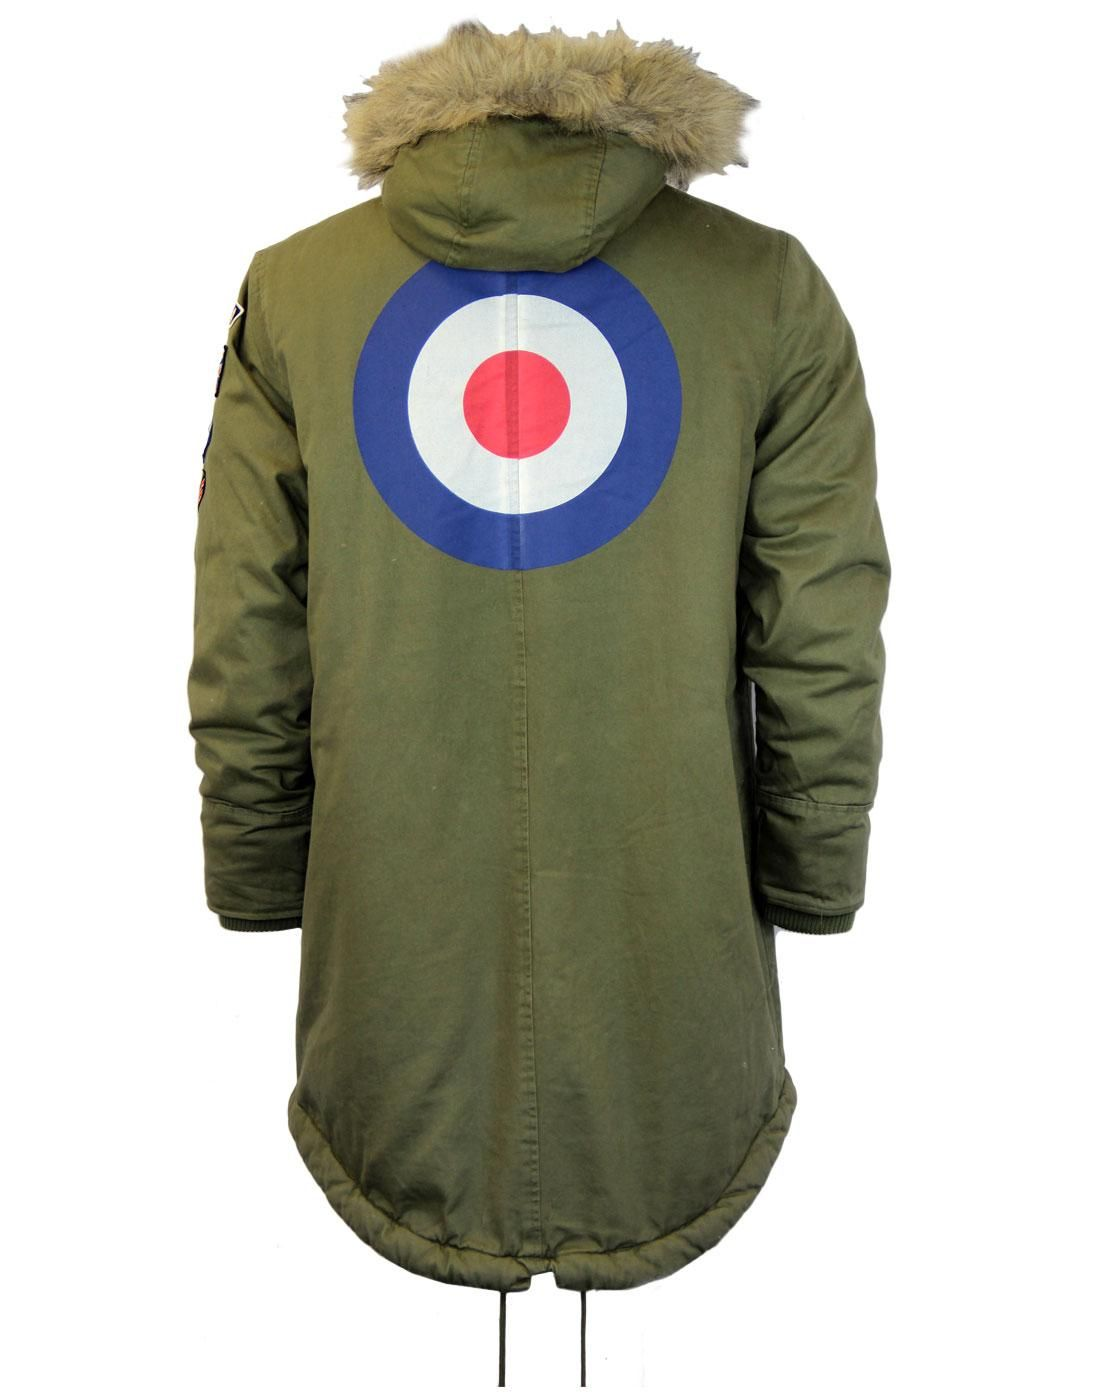 819bd5784be9 Brand: Lambretta Key Points: Lambretta fishtail parka with Mod Target back  print and arm patches.